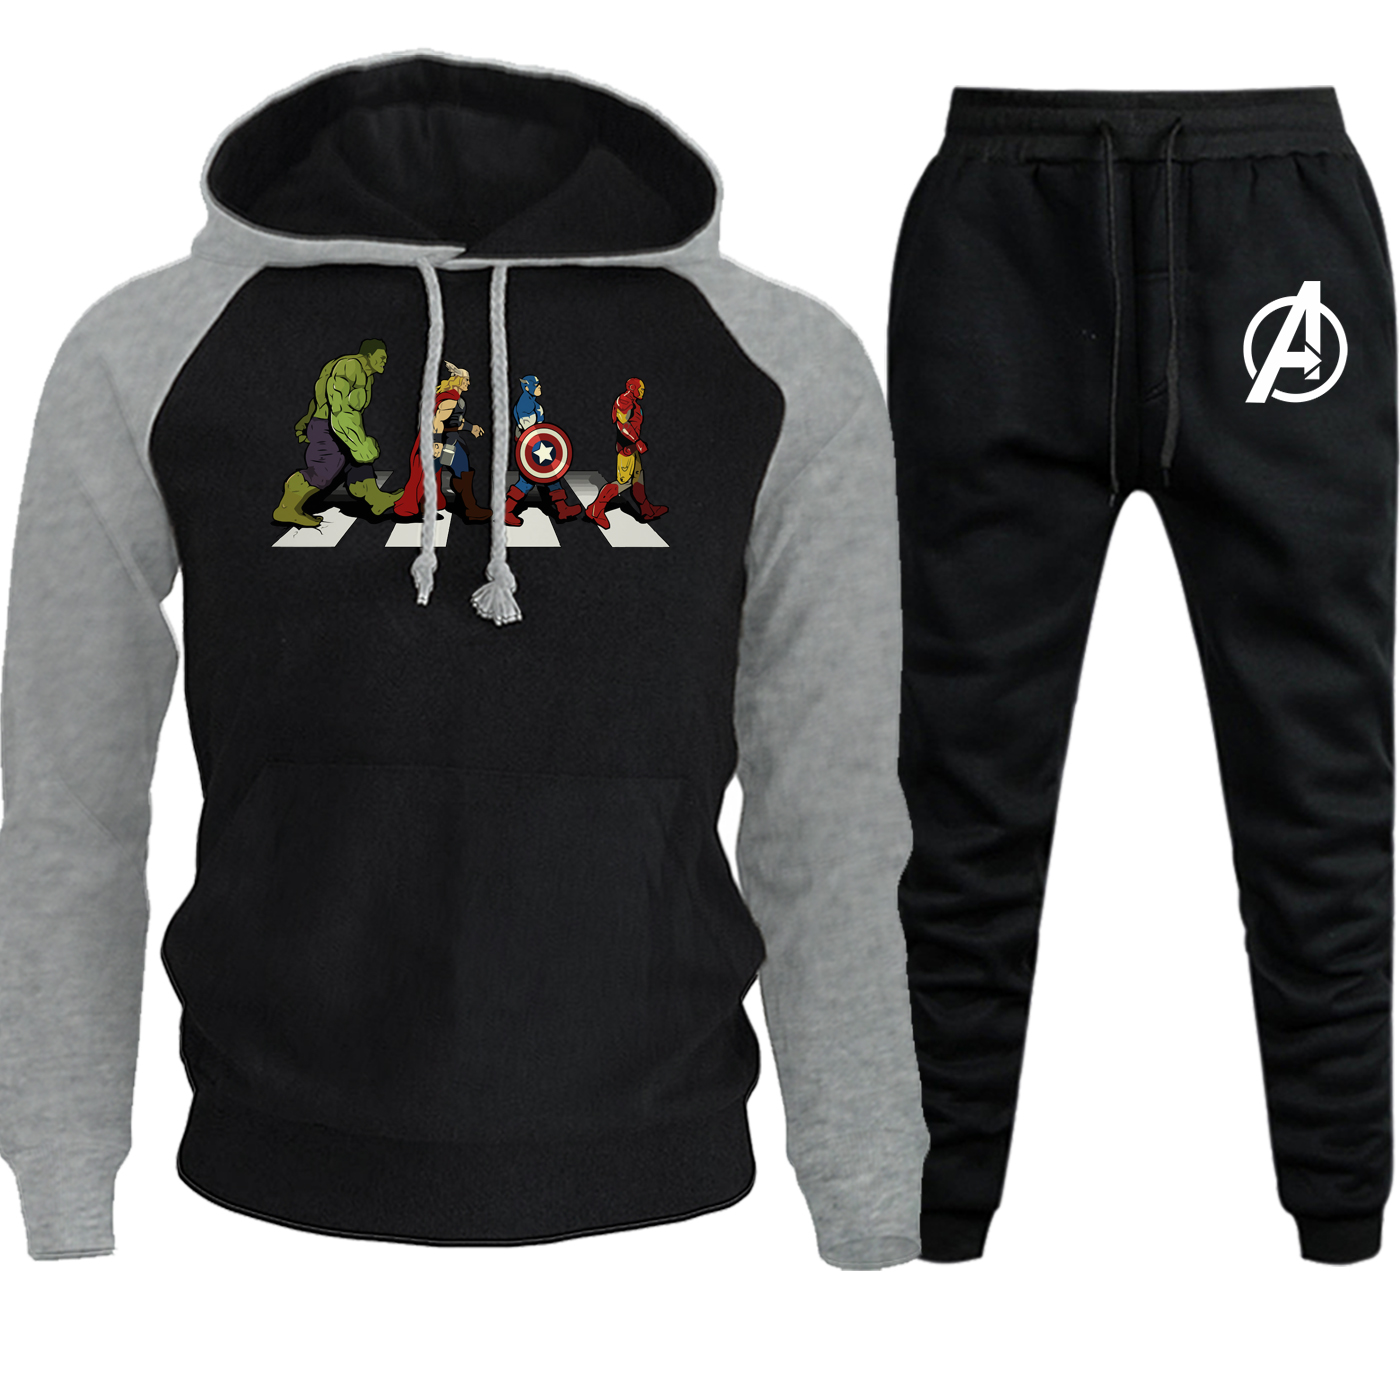 The Avengers Hoodies Men Raglan Sweatshirts Hot Sale Autumn Winter Suit Casual Pullover Hip Hop Suit Hooded+Pants 2 Piece Set